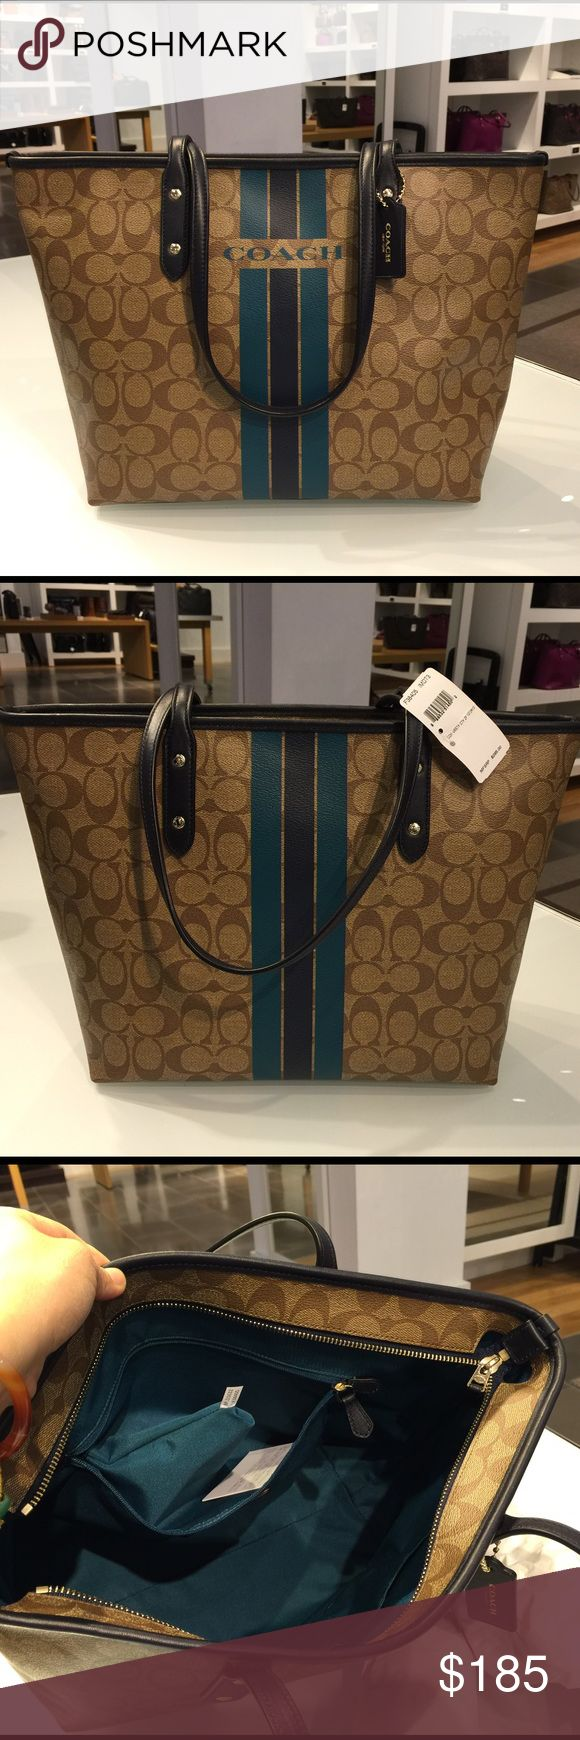 🍀Coach Tote Bag🍀 100% Authentic Coach Tote Bag, brand new with tag! Coach Bags Totes